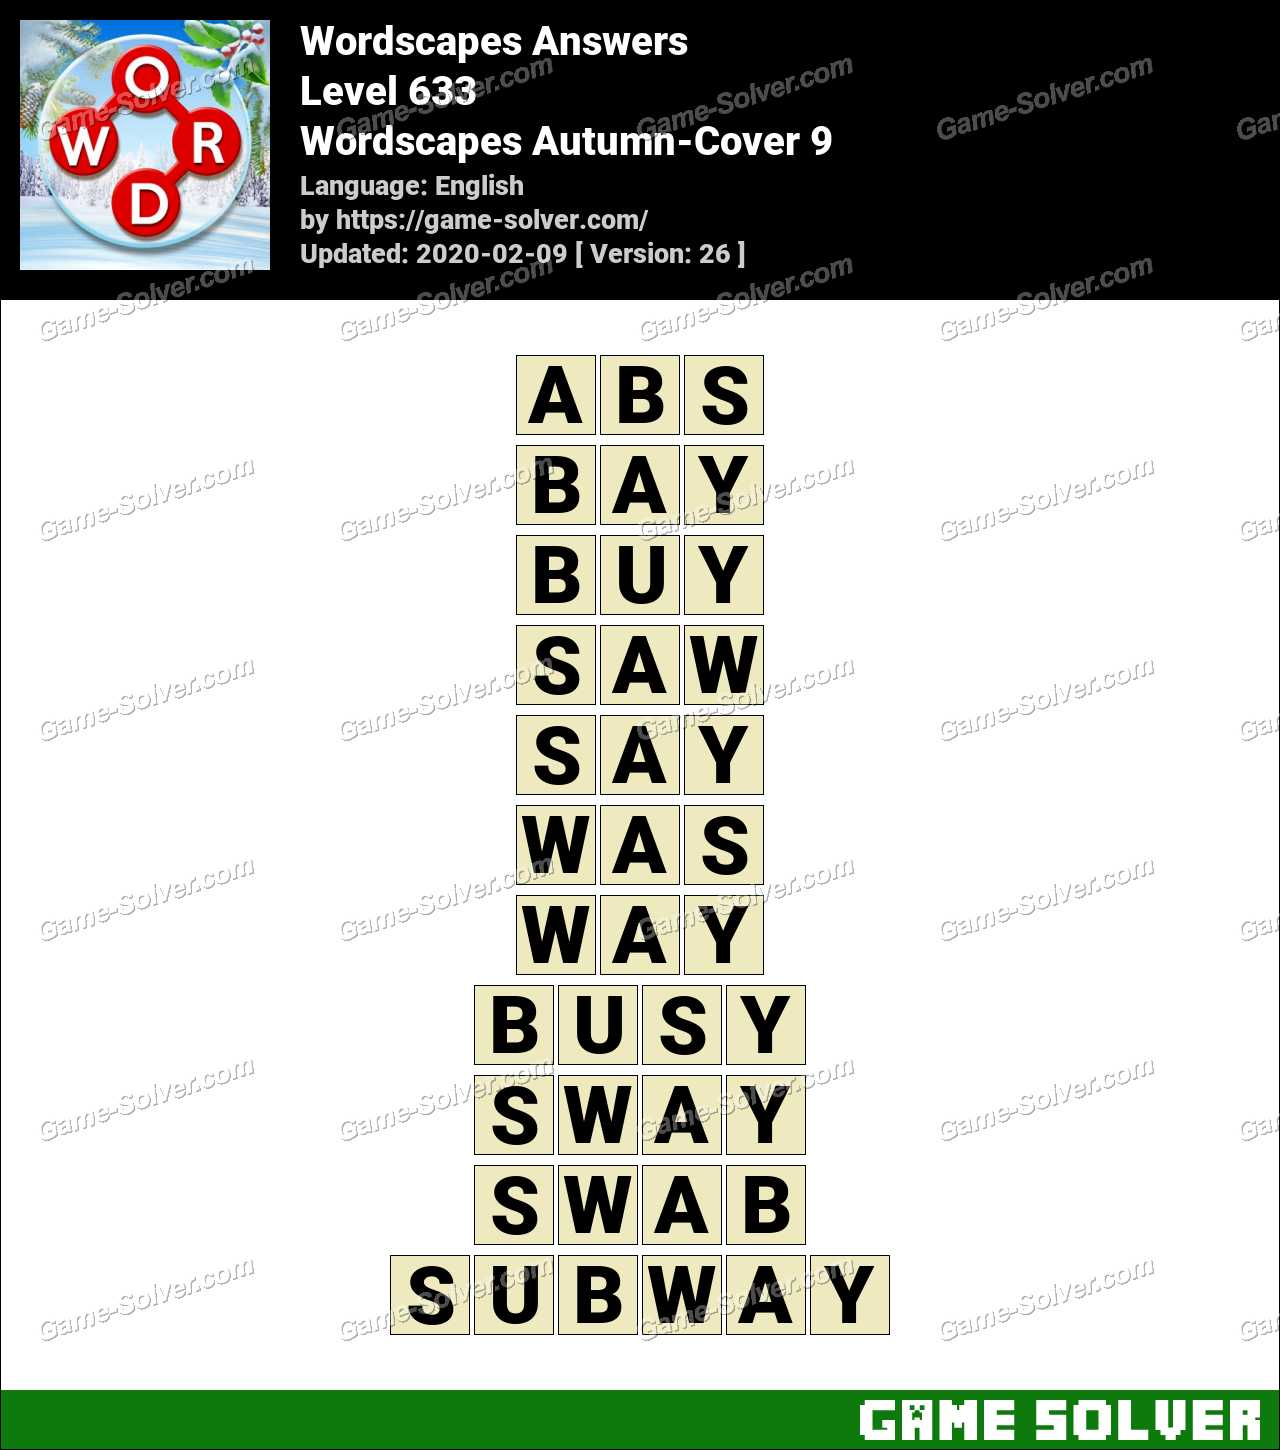 Wordscapes Autumn-Cover 9 Answers - Game Solver